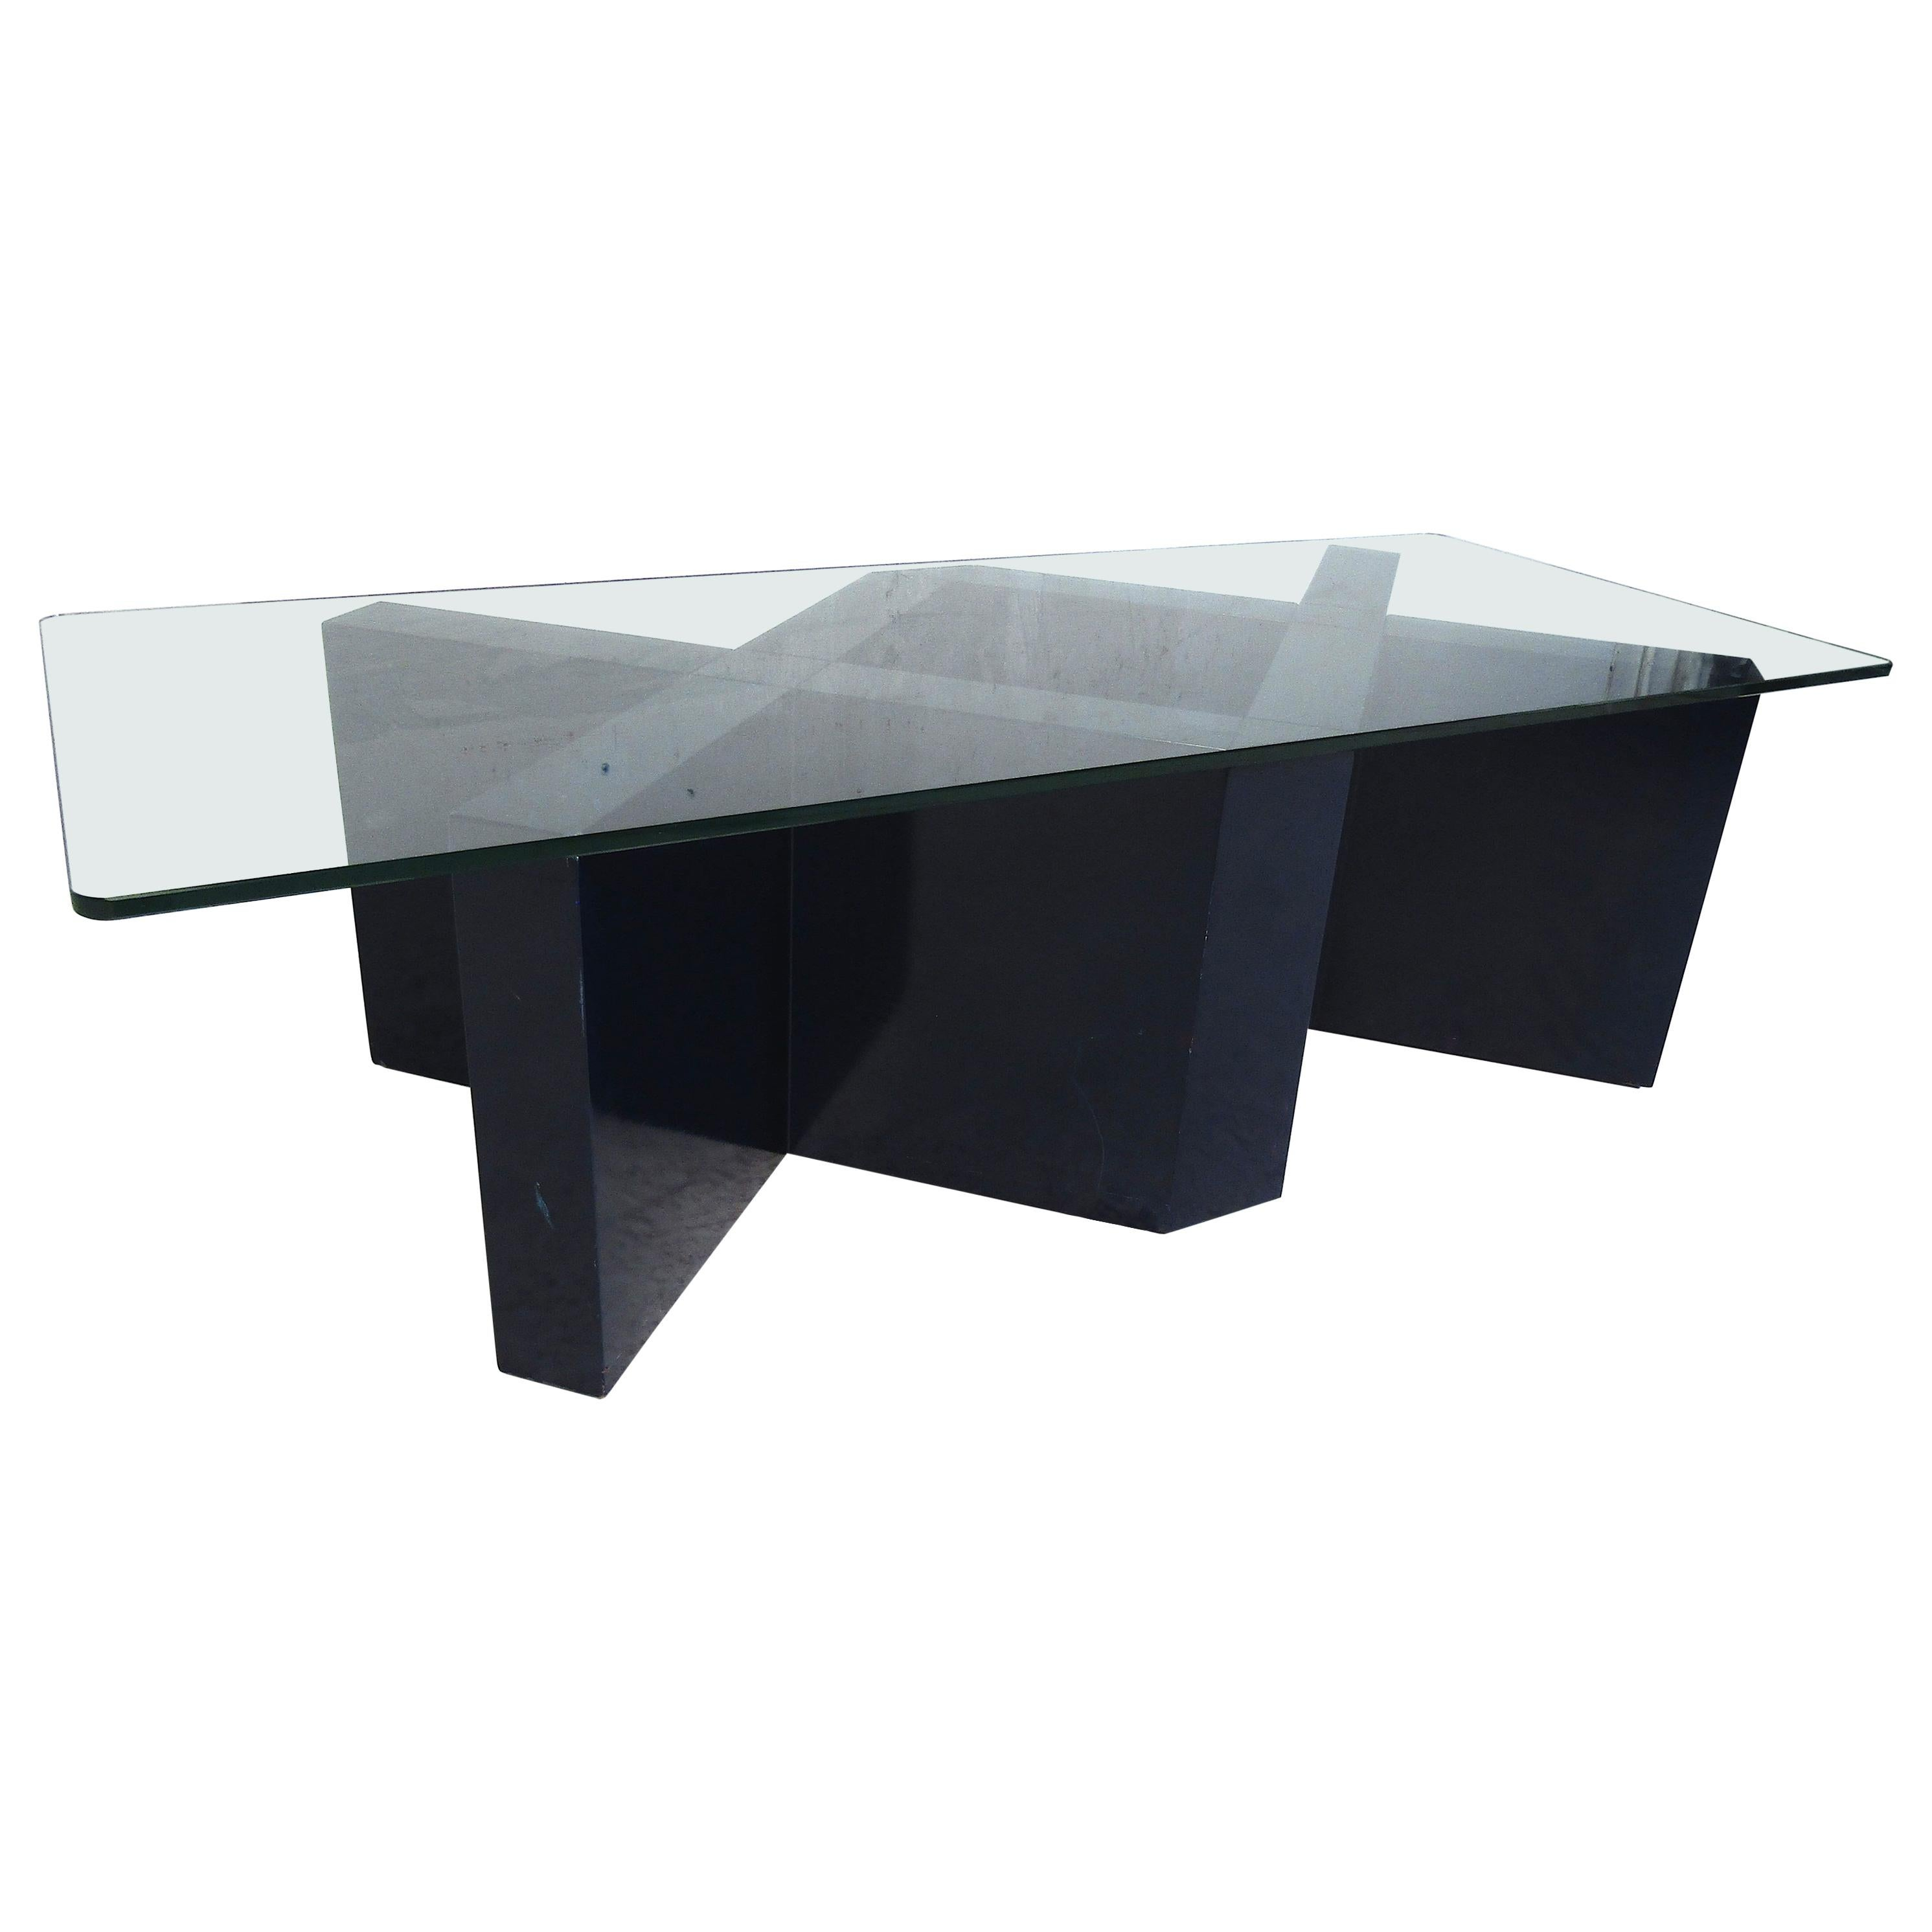 Midcentury Designer Wood and Glass Coffee Table